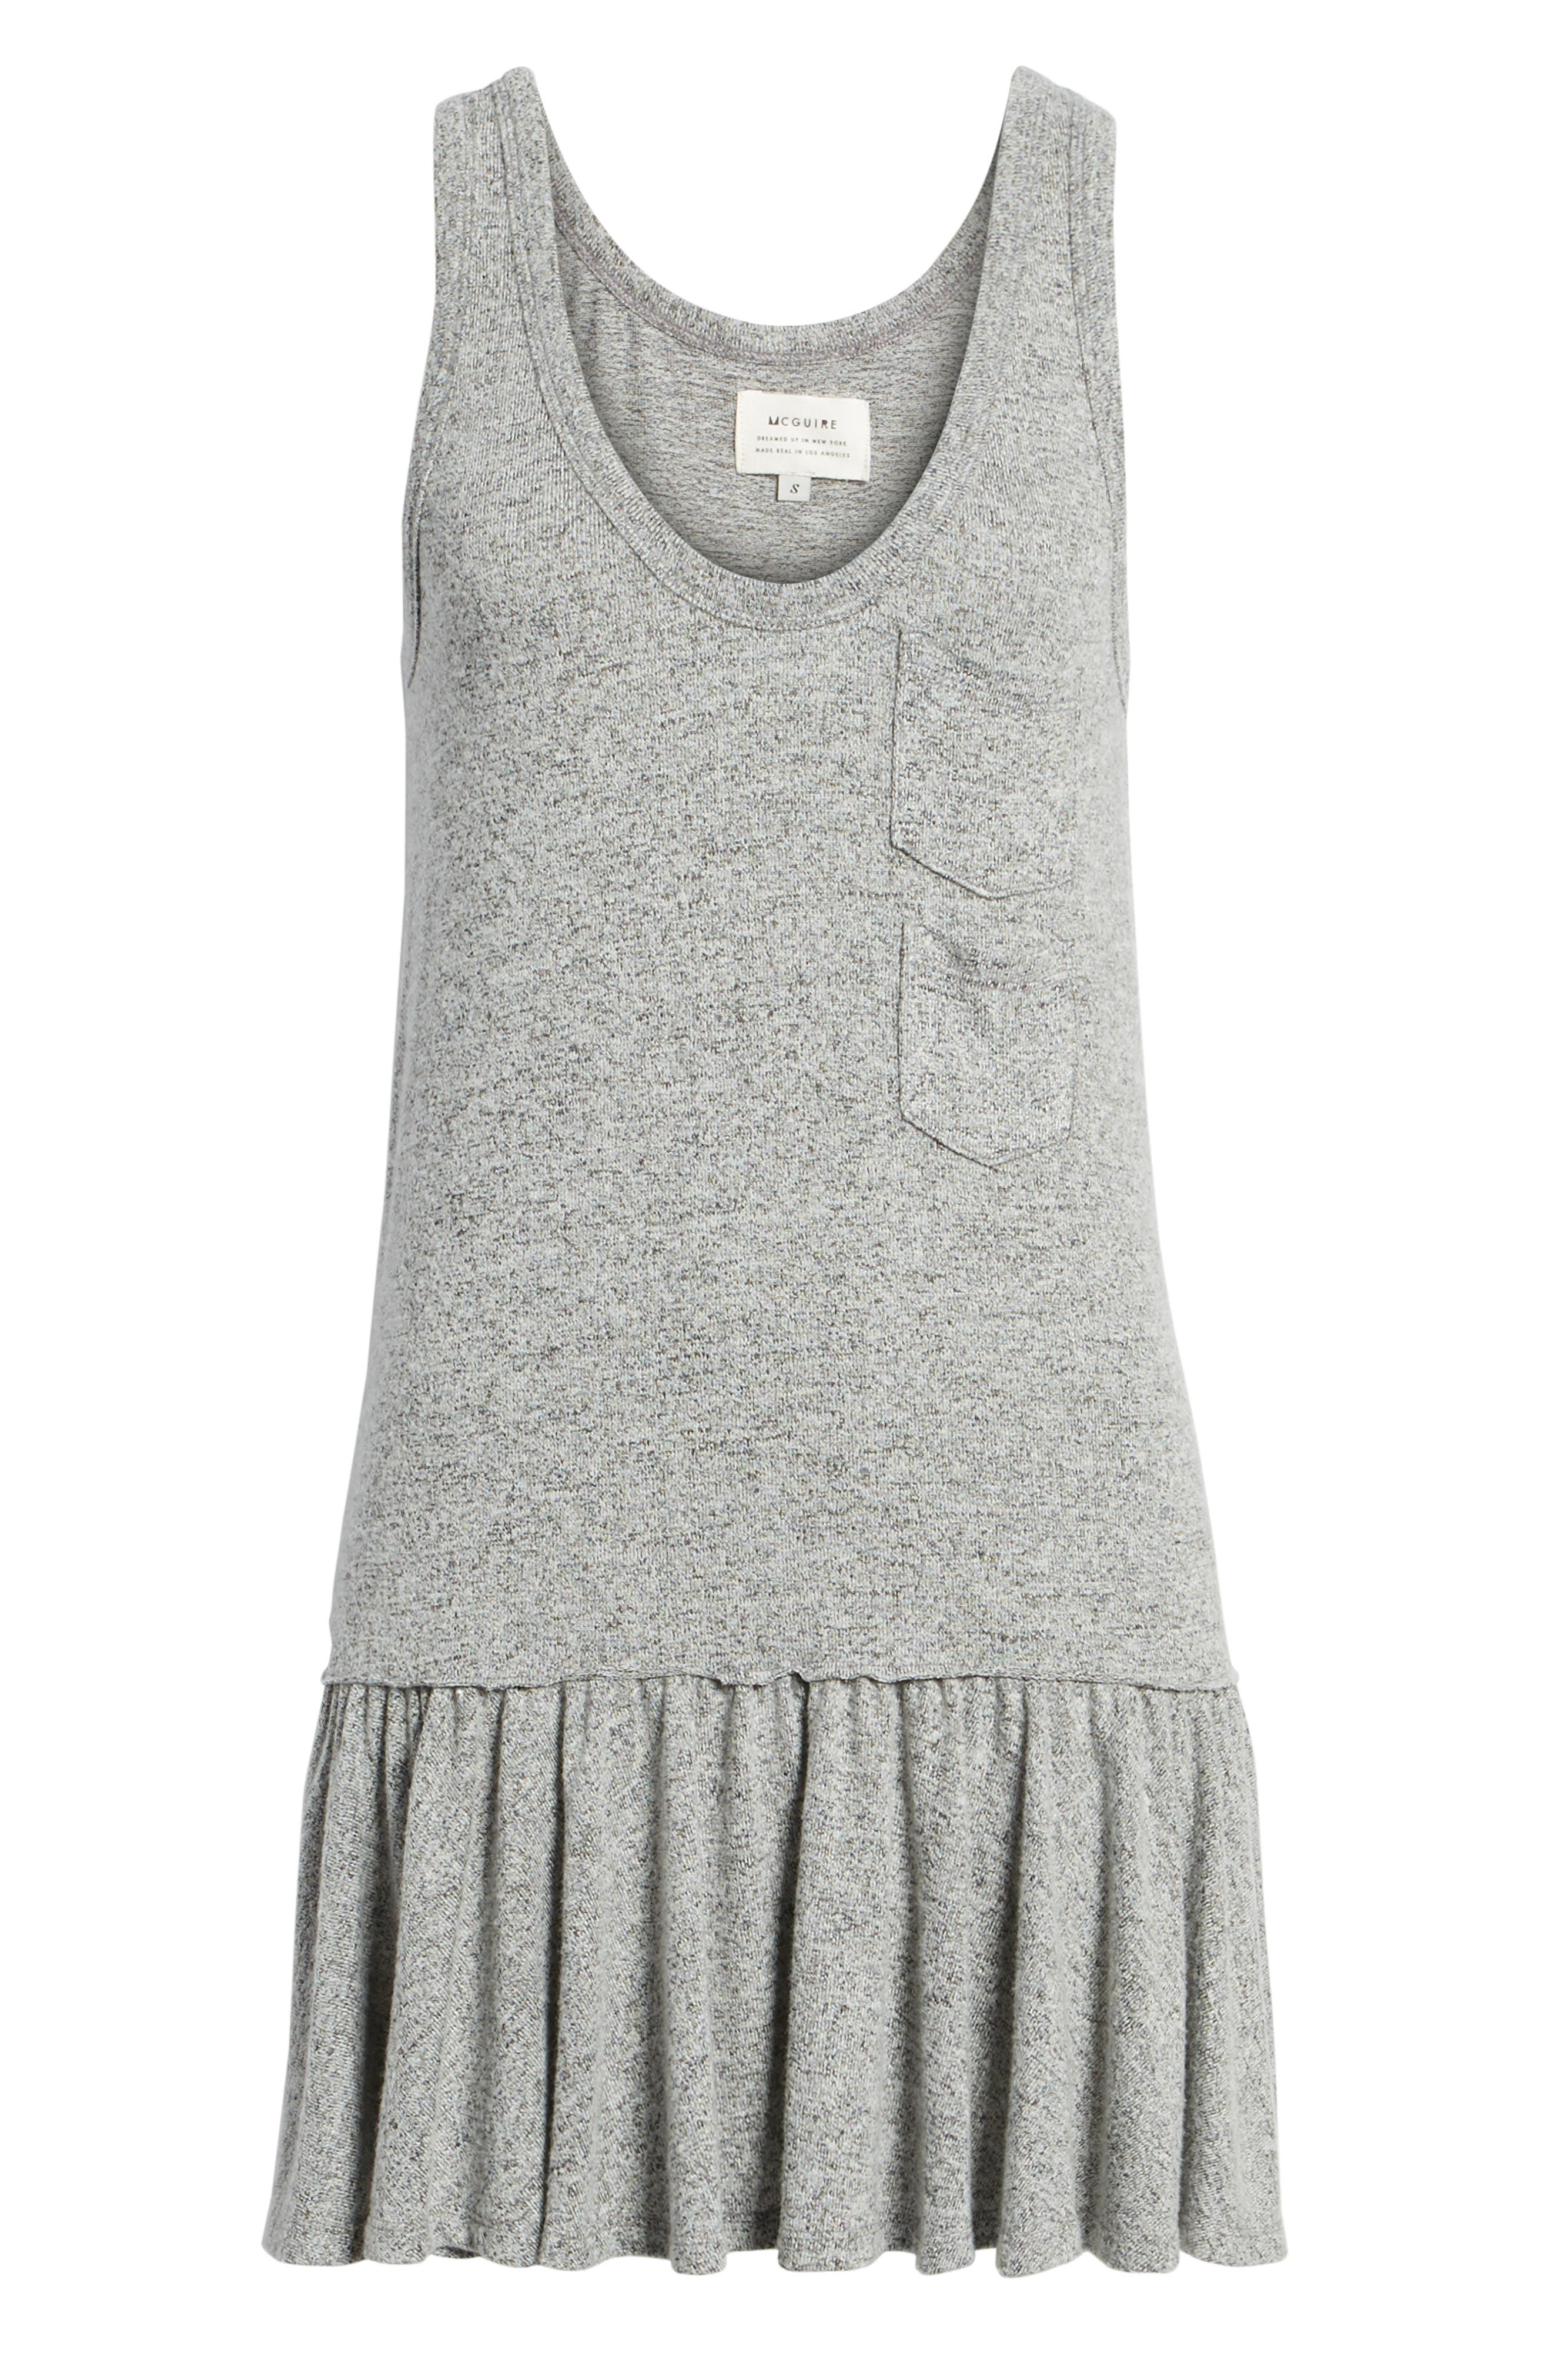 Summer in the City Tank Dress,                             Alternate thumbnail 6, color,                             Heather